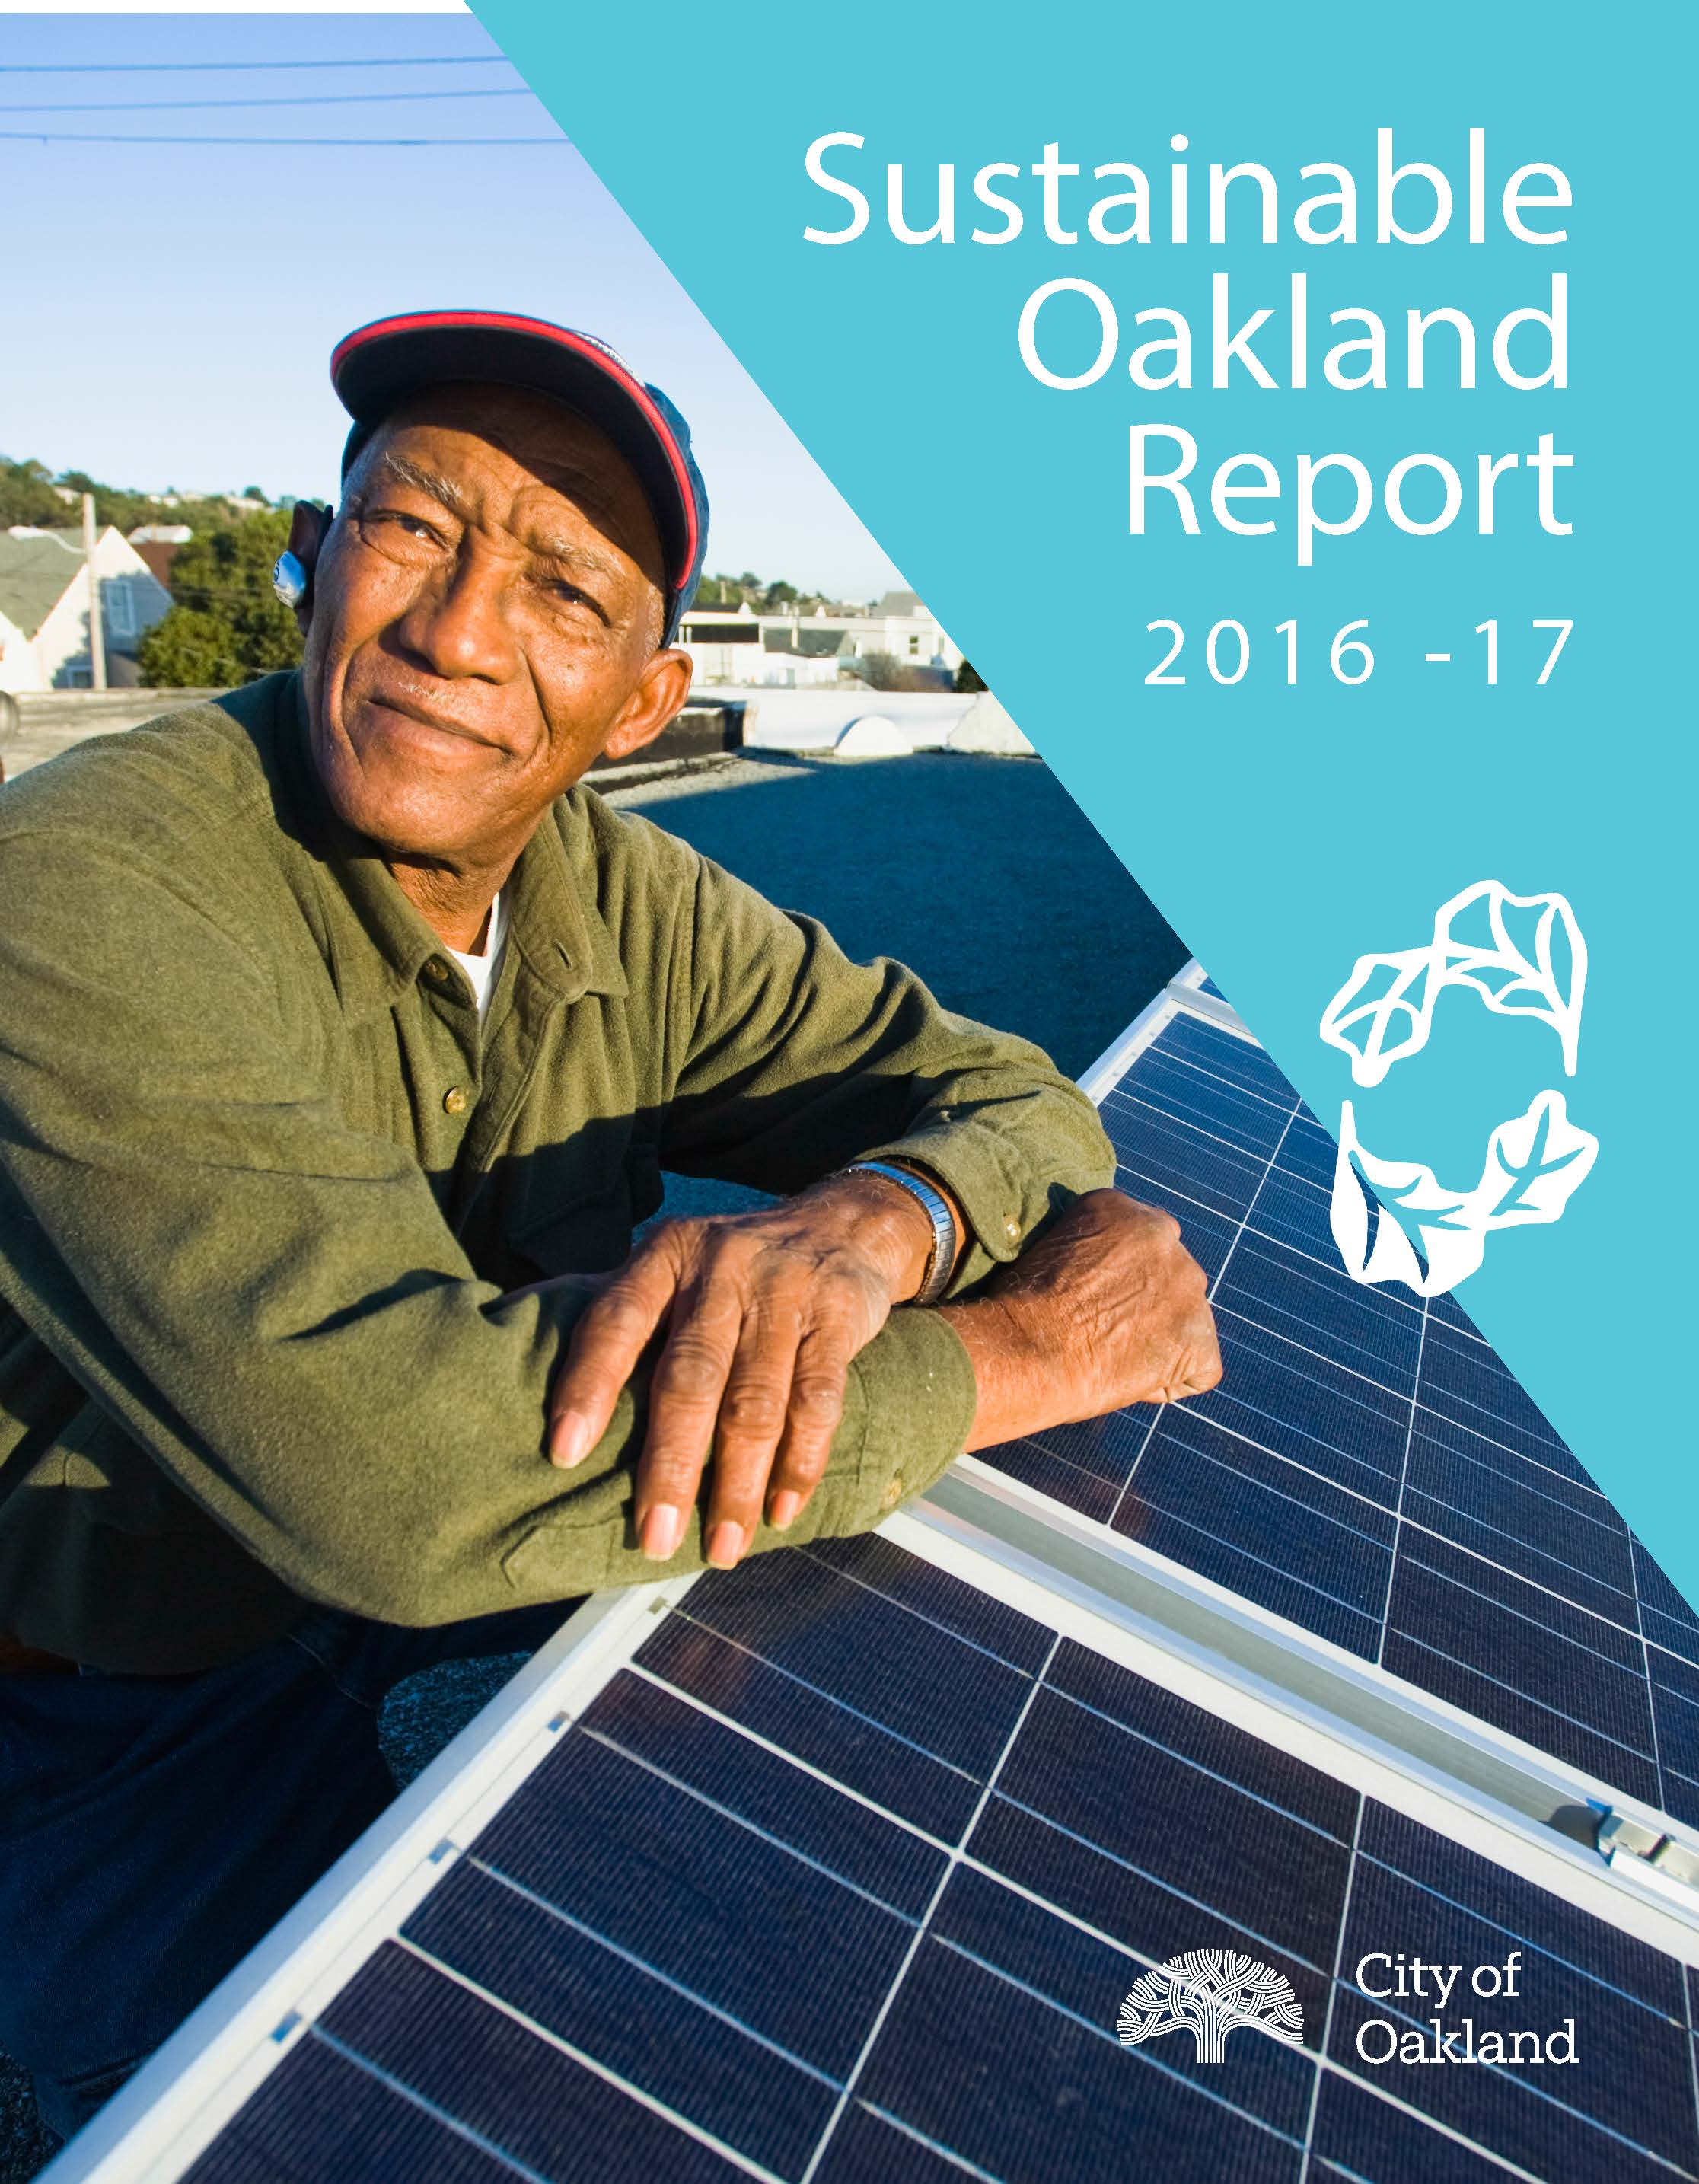 Cover Image - Sustainable Oakland 2016-17 Report